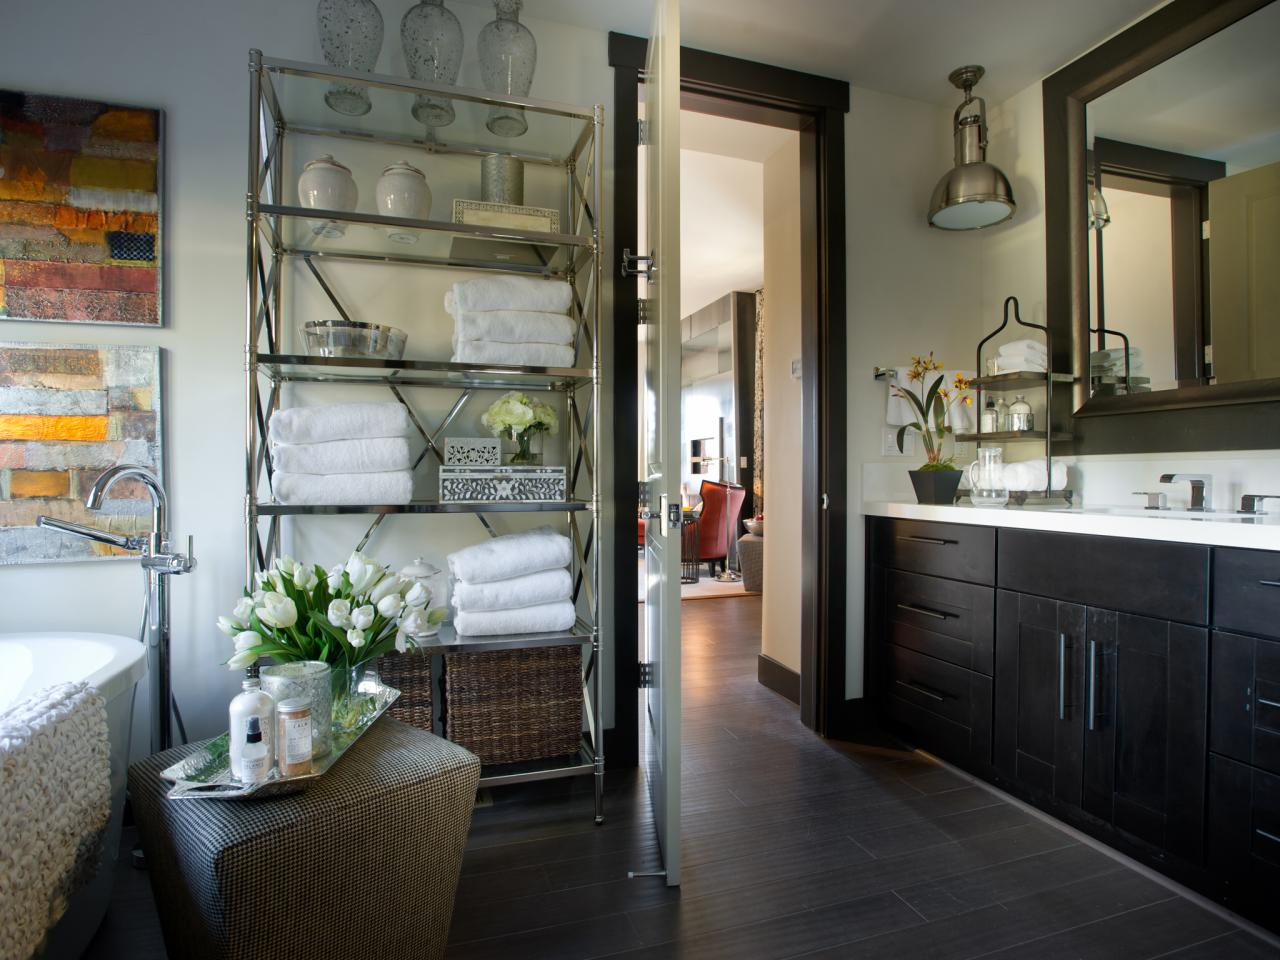 Hgtv dream home 2014 master bathroom pictures and video for Bathroom designs hgtv